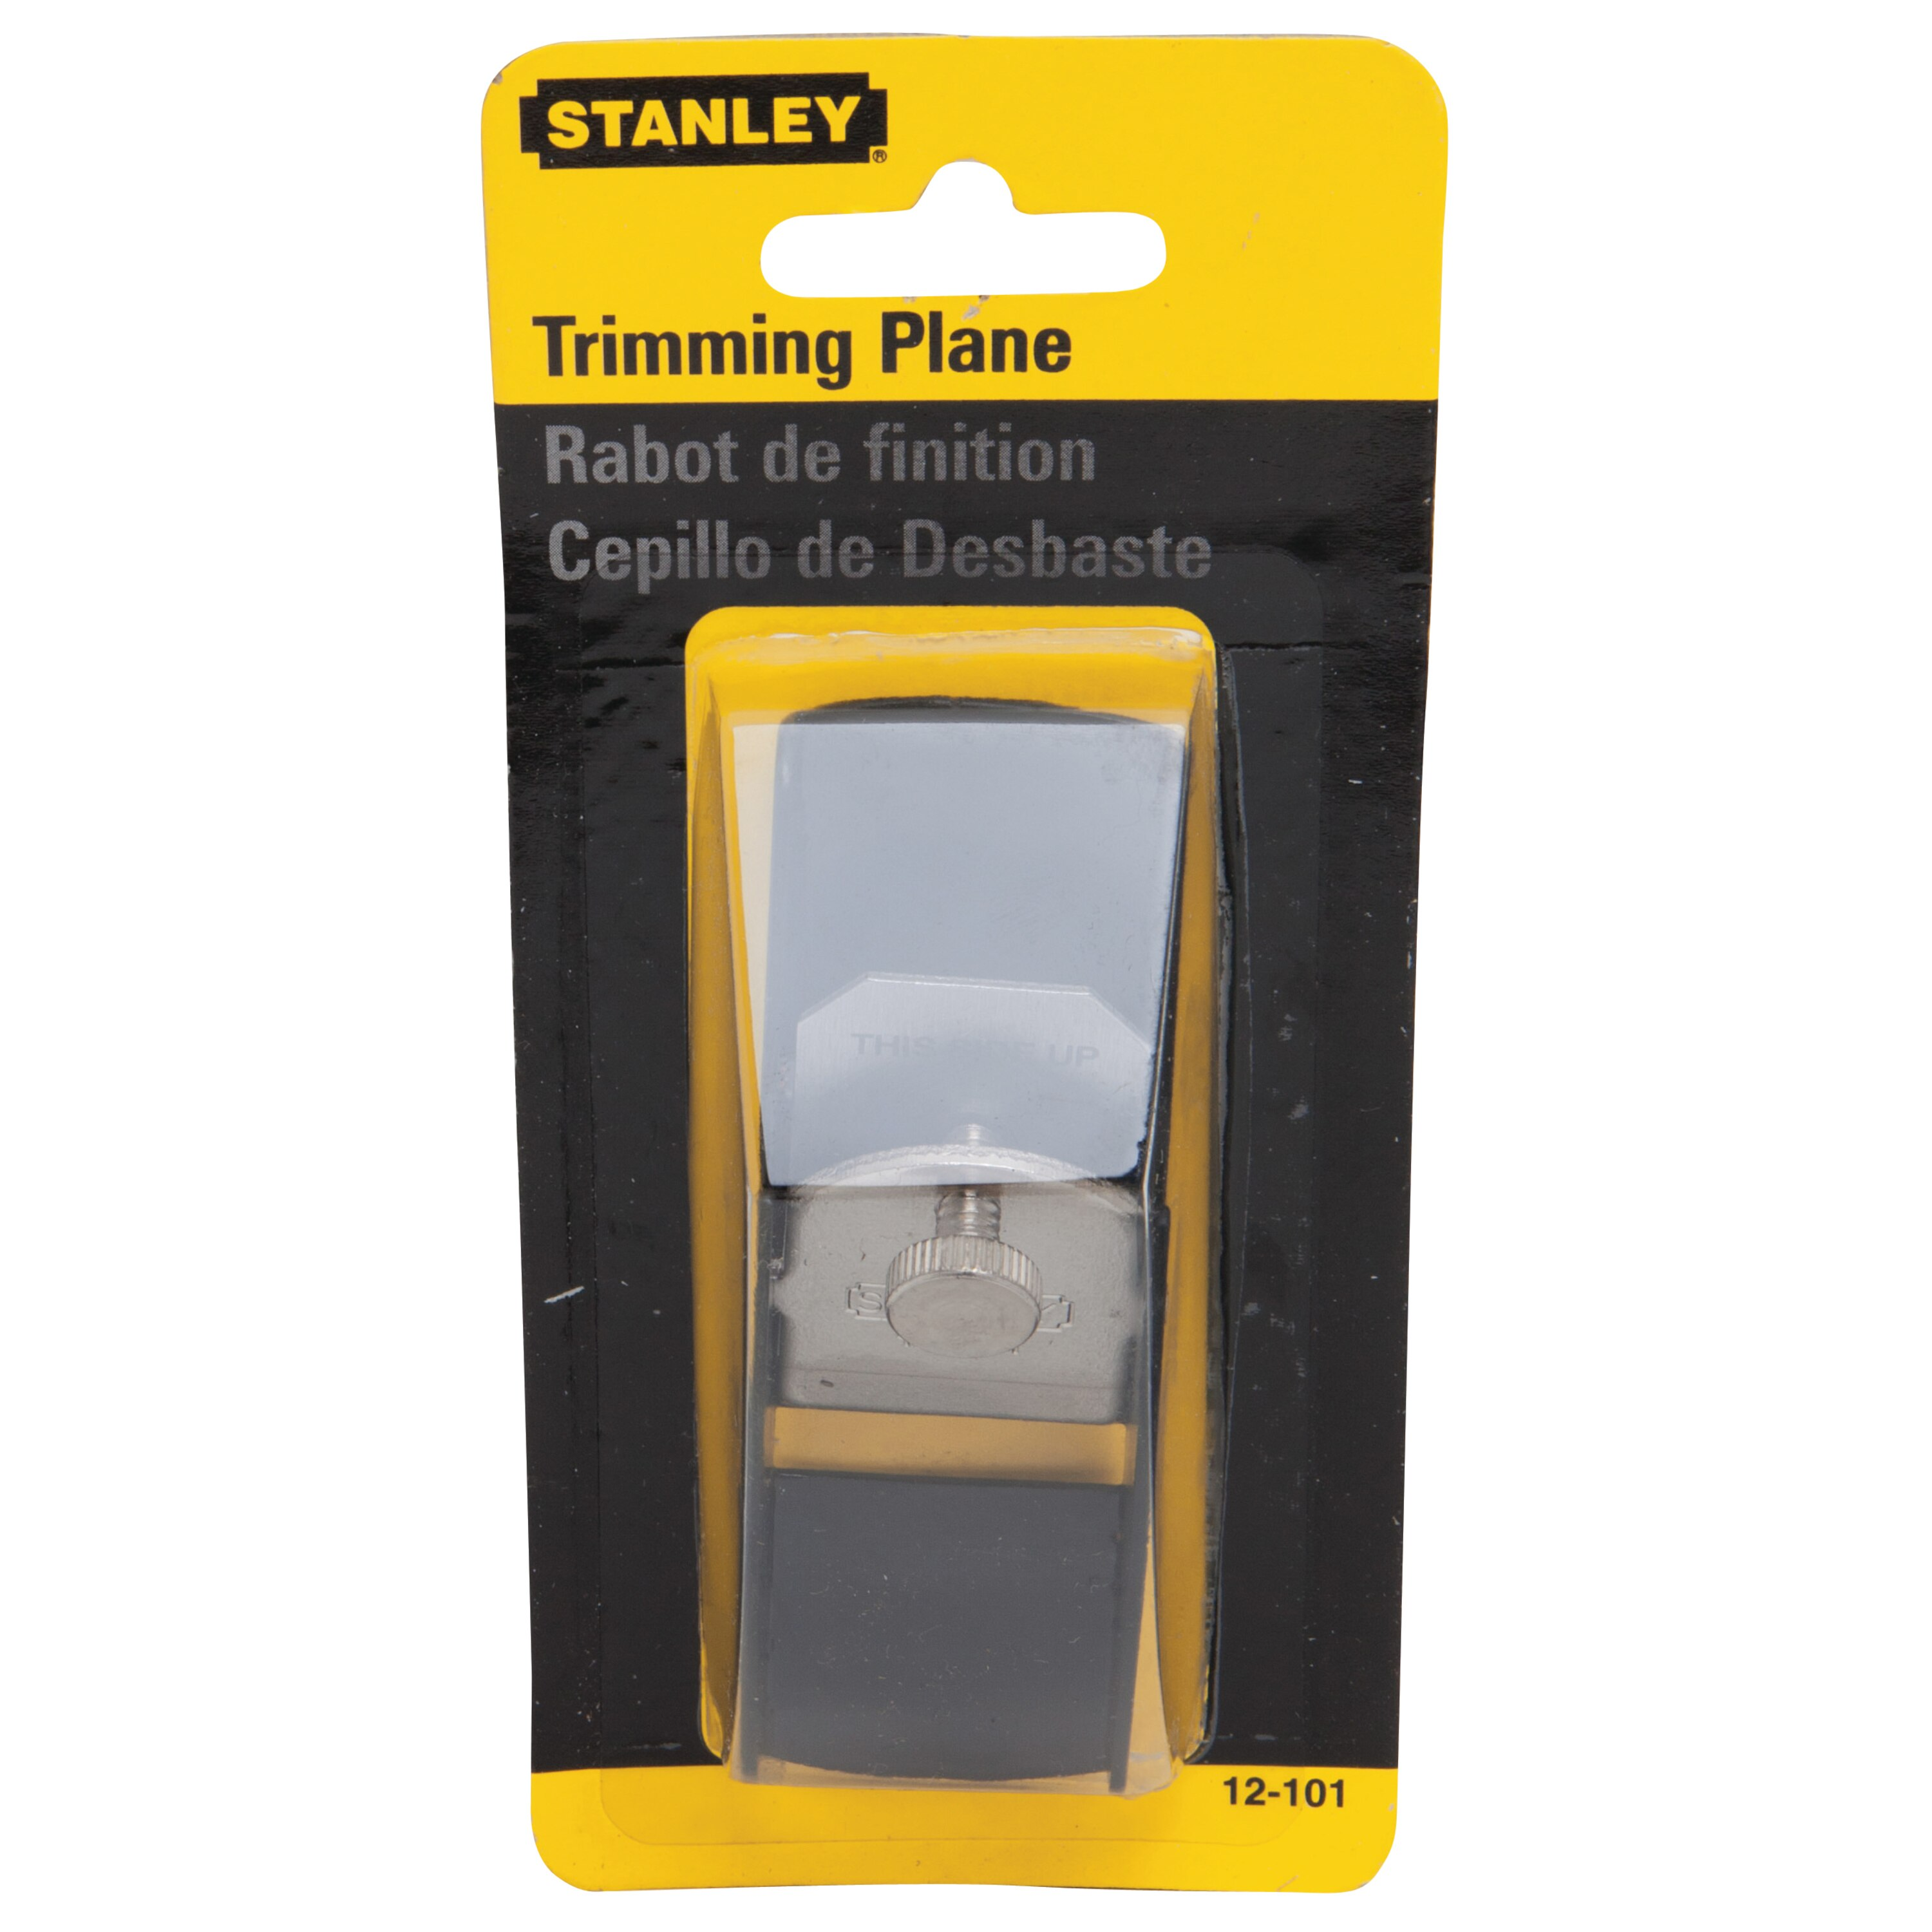 Stanley Tools - Small Trimming Plane - 12-101